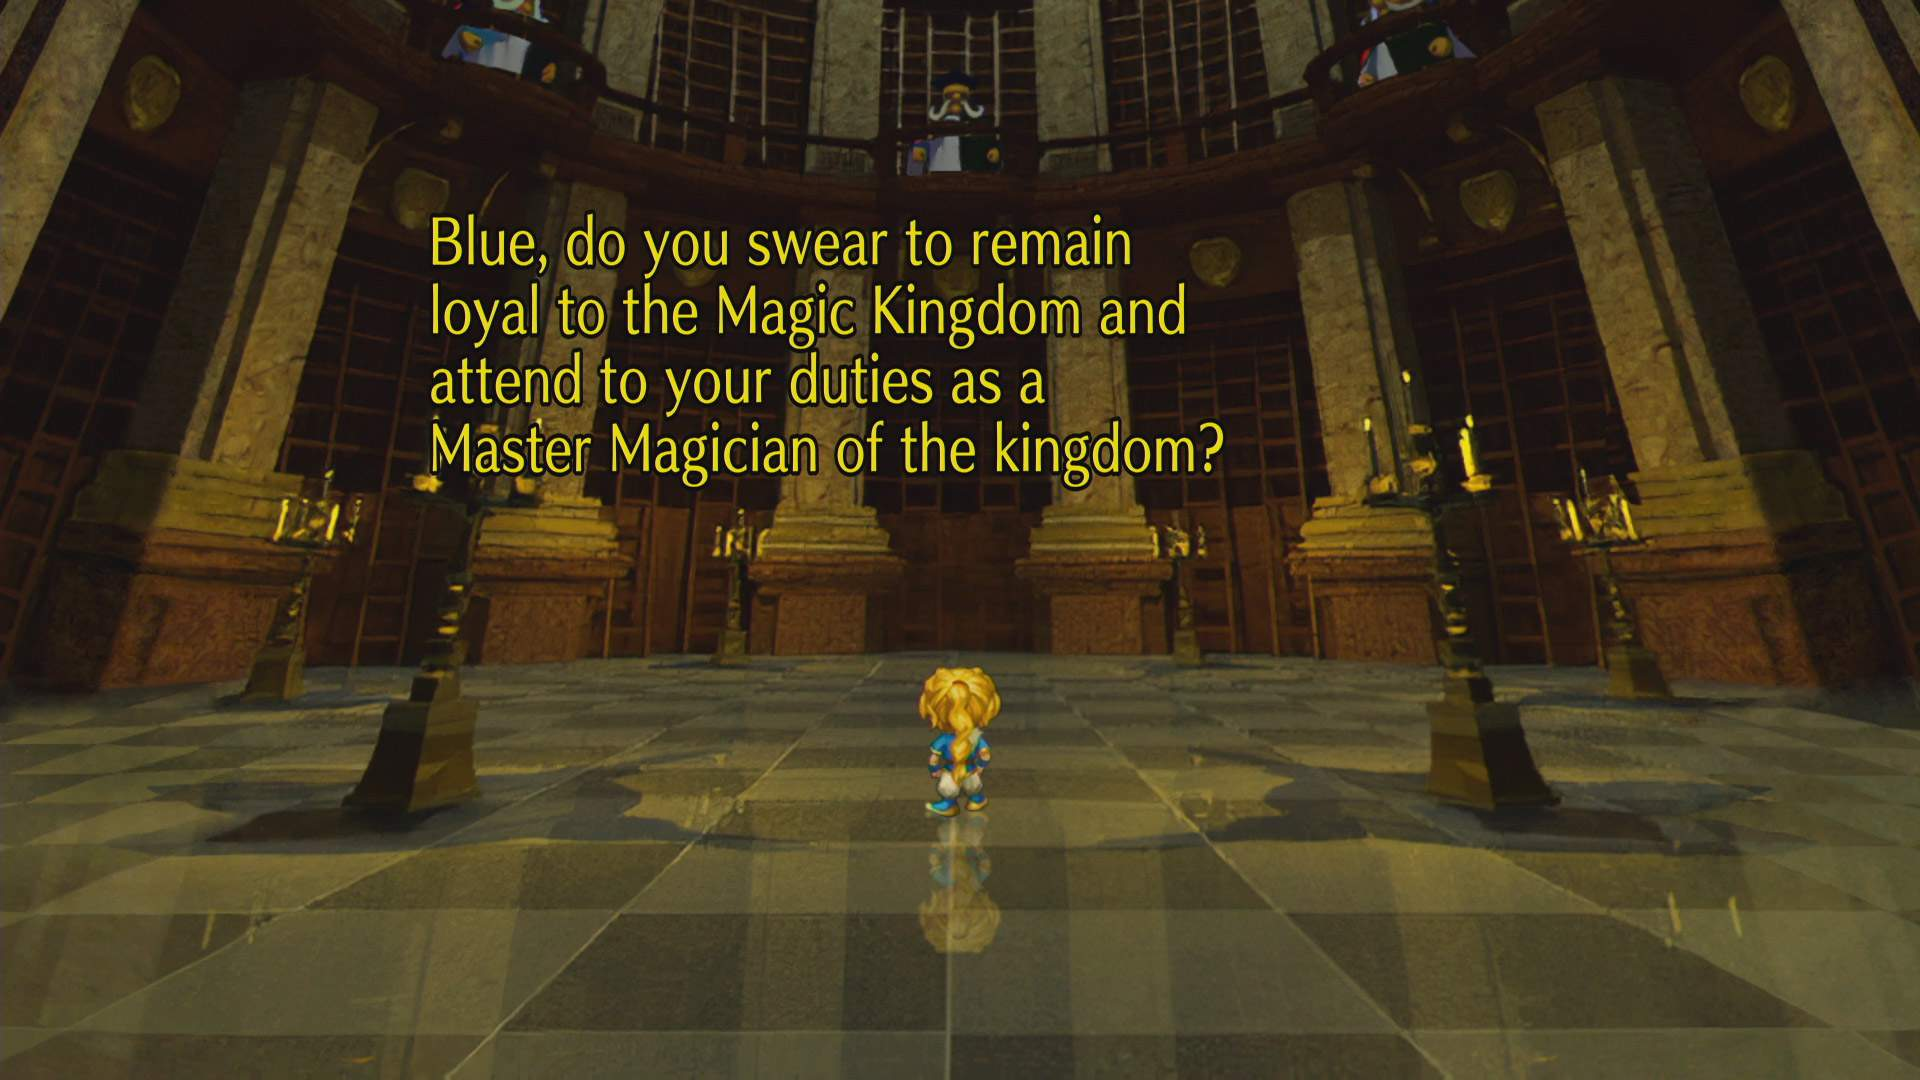 SaGa Frontier Remastered character BLUE stands in the center of a room, with characters above looking down on him. There are on-screen game dialogue lines.